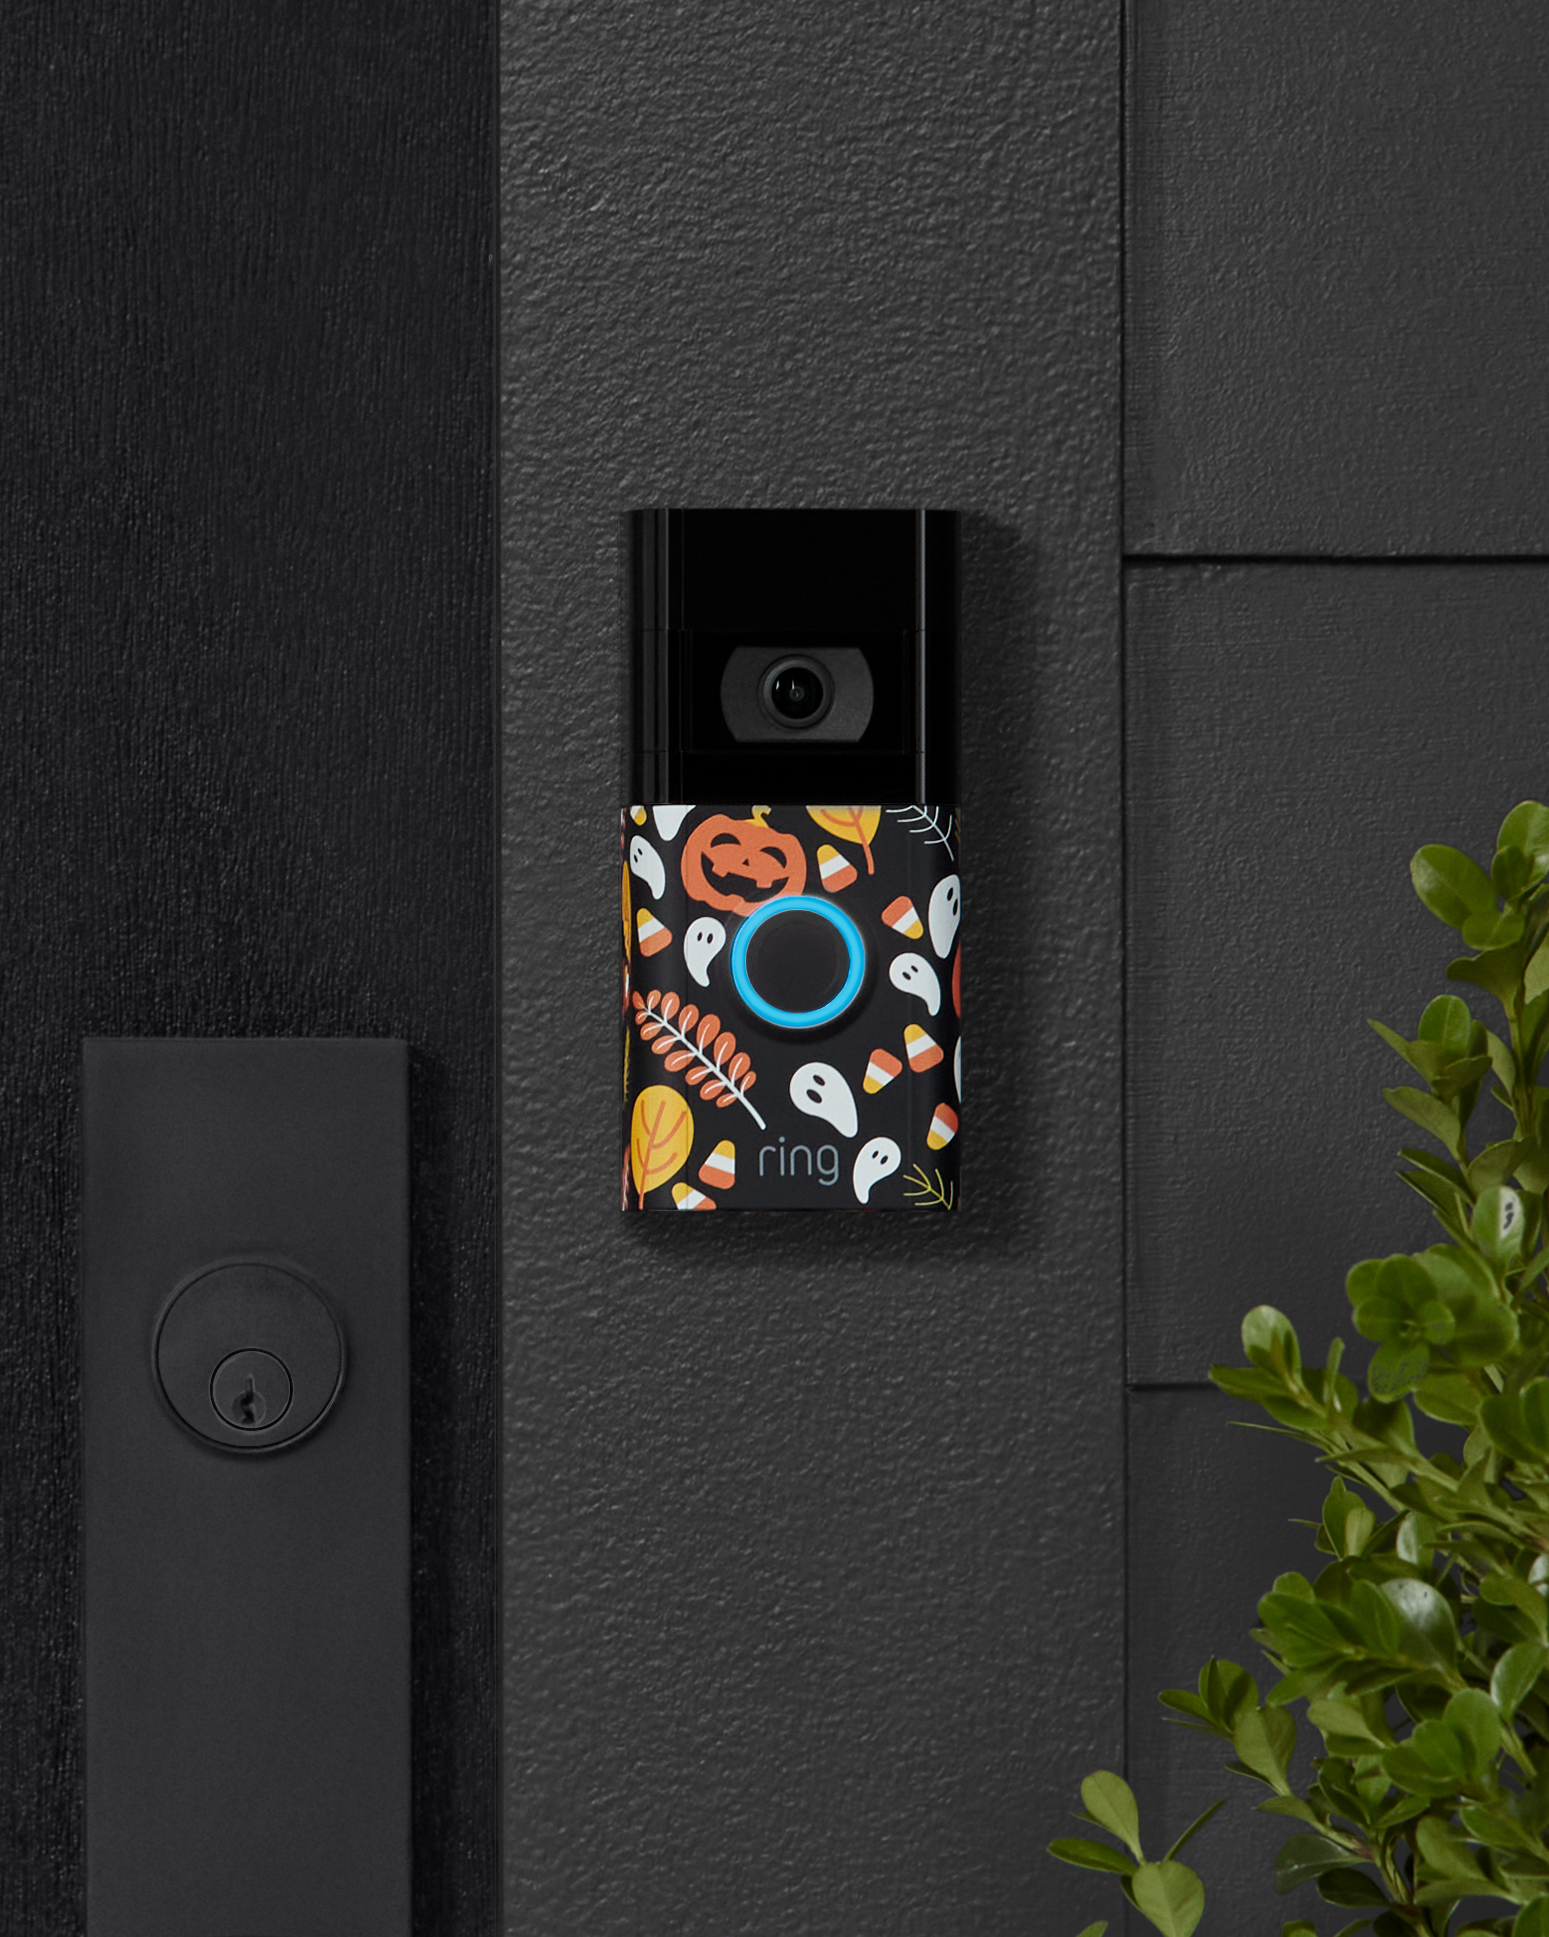 ring-video-doorbell-4-with-halloween-faceplate-lifestyle